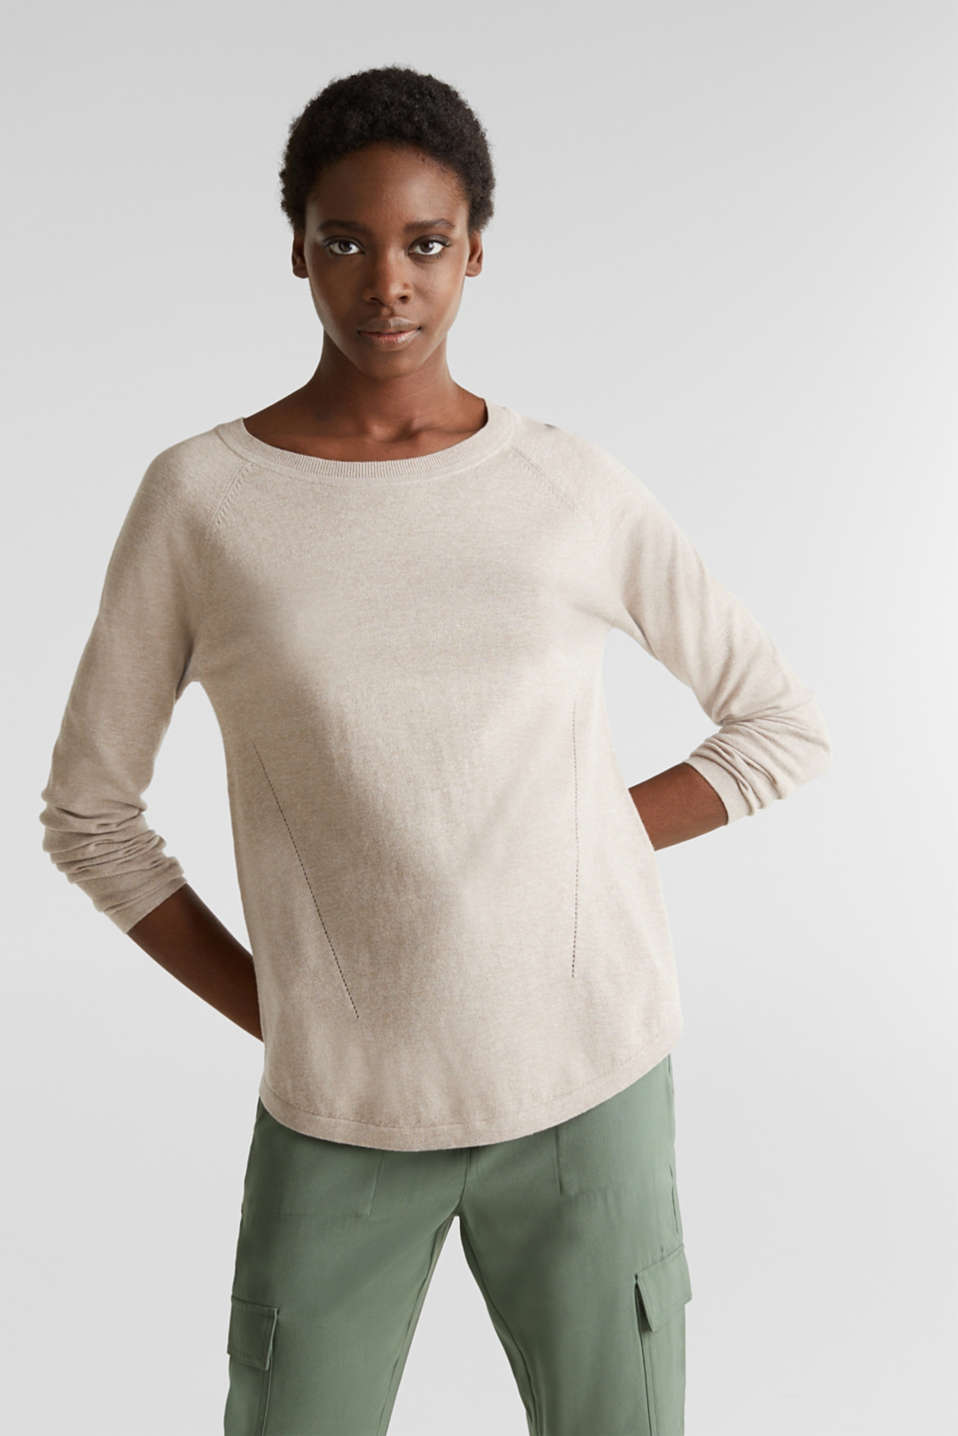 With linen: Jumper with open-work patterned details, BEIGE 5, detail image number 0